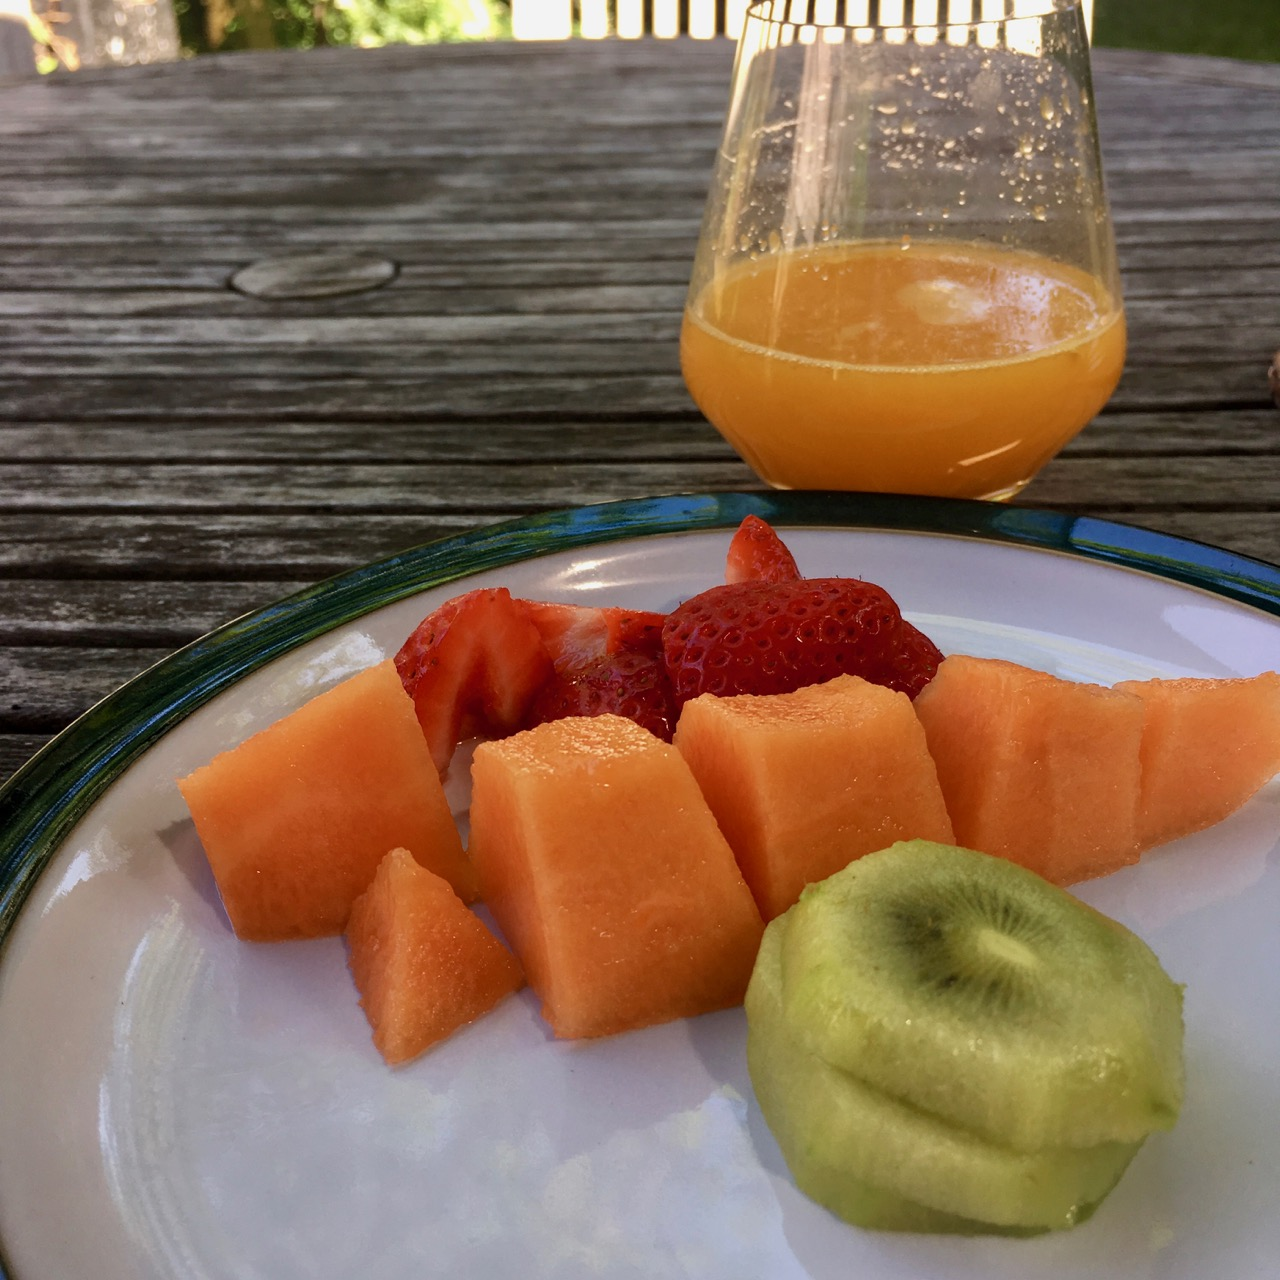 A colourful and healthy breakfast in the garden